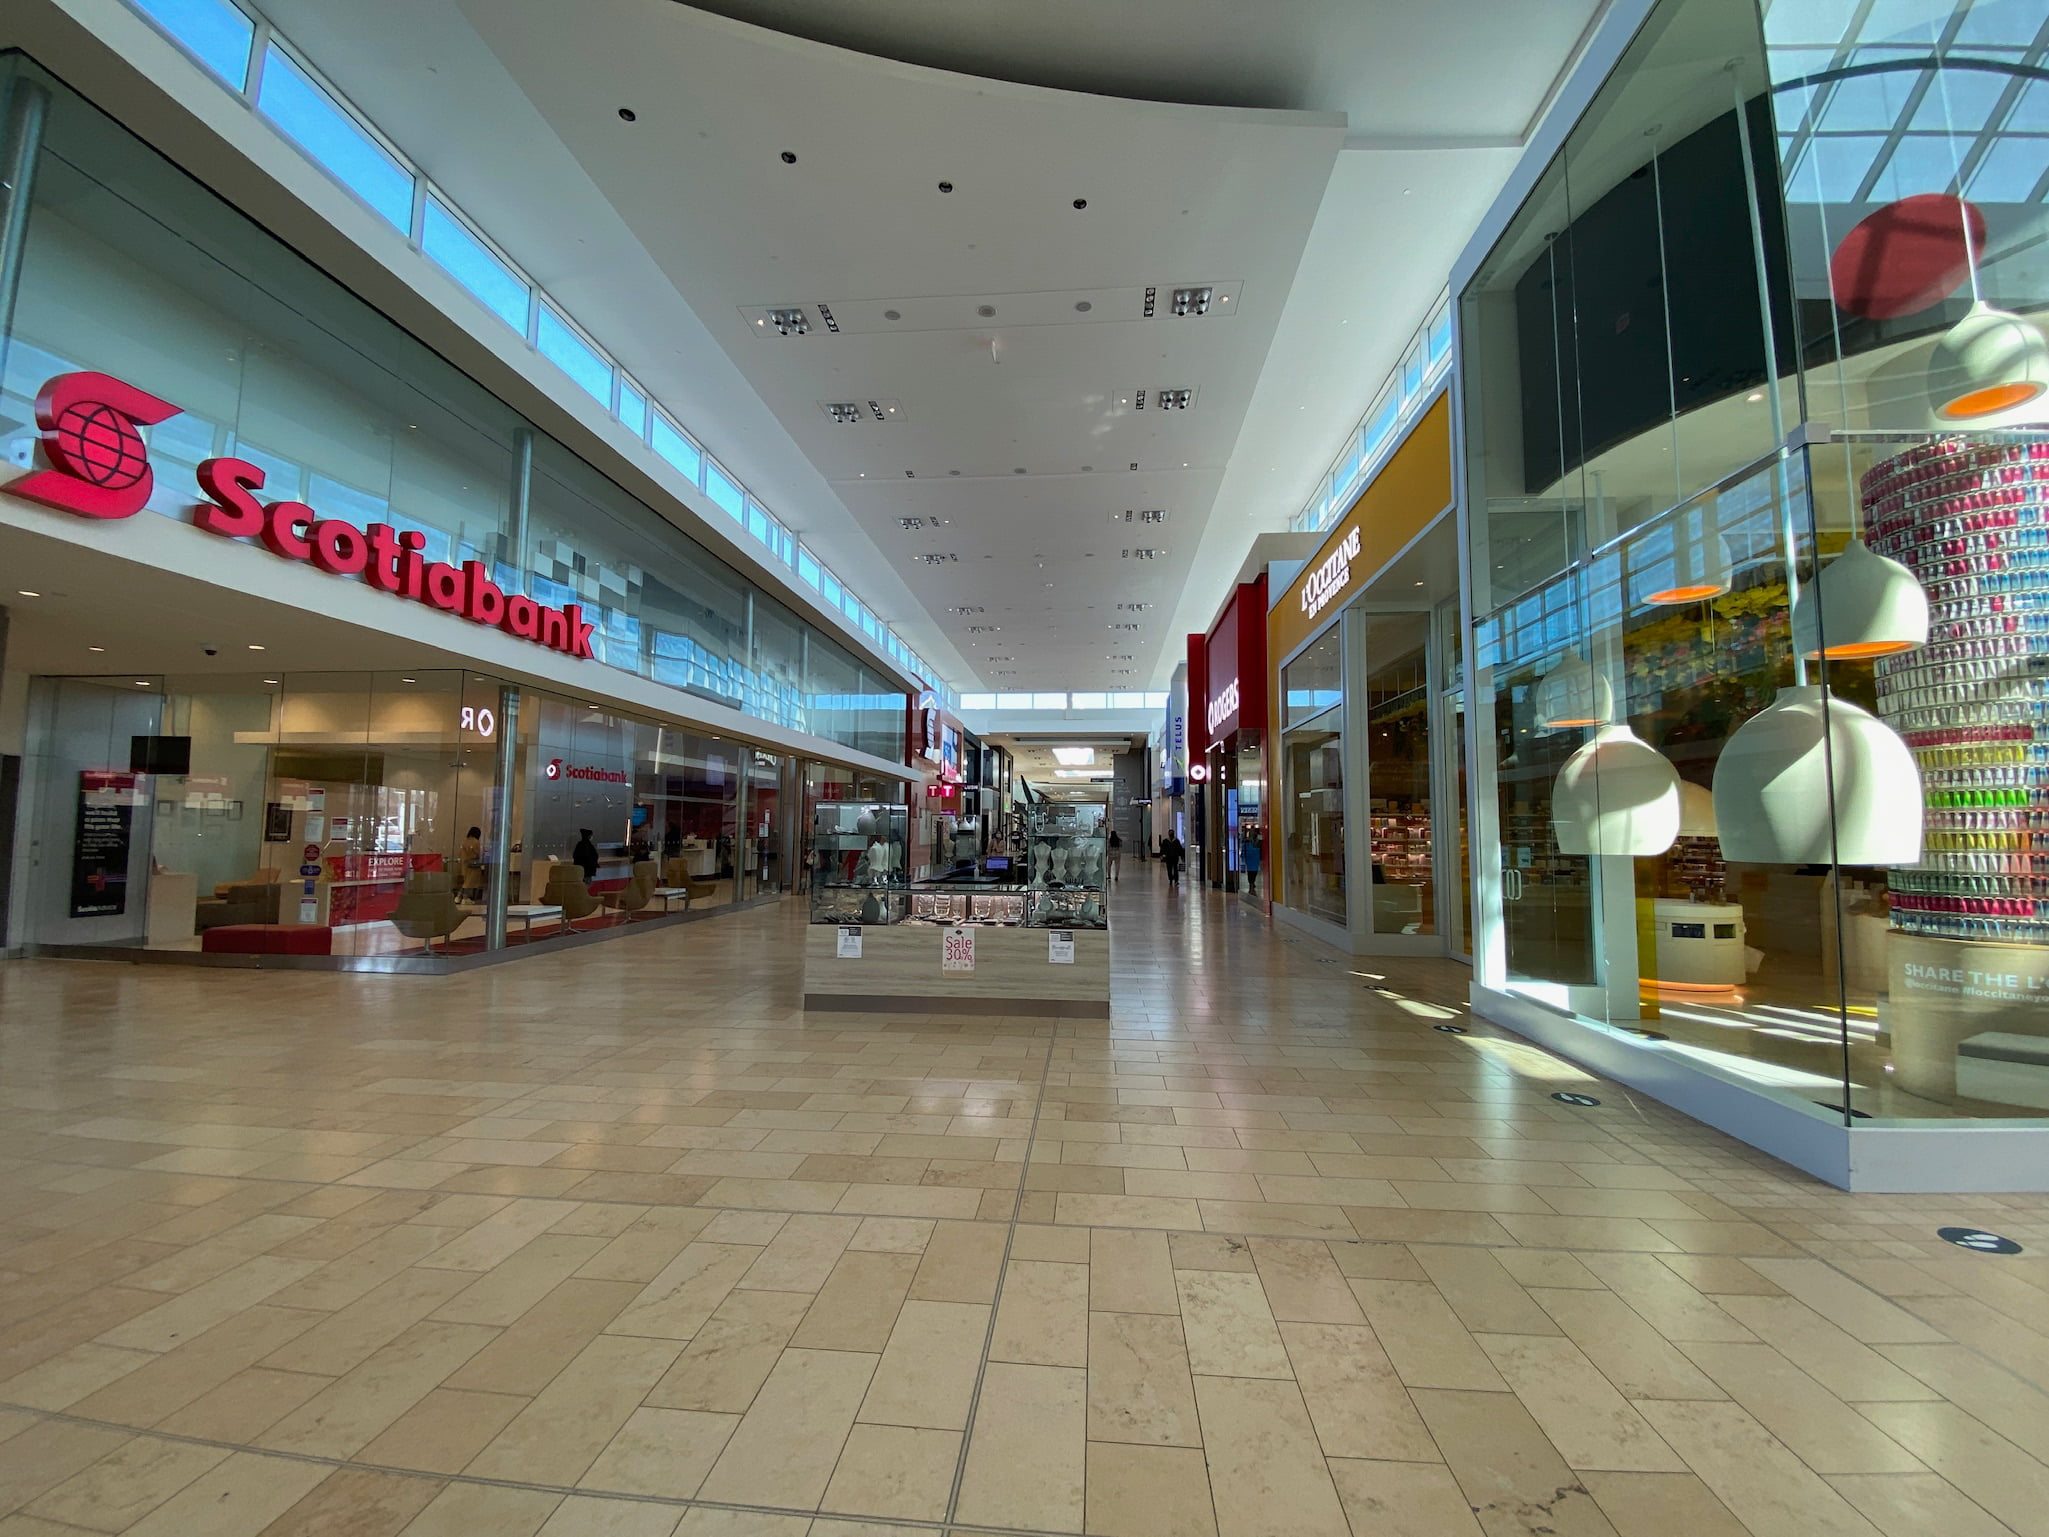 Scotiabank and L'Occtaine du Provence at Yorkdale